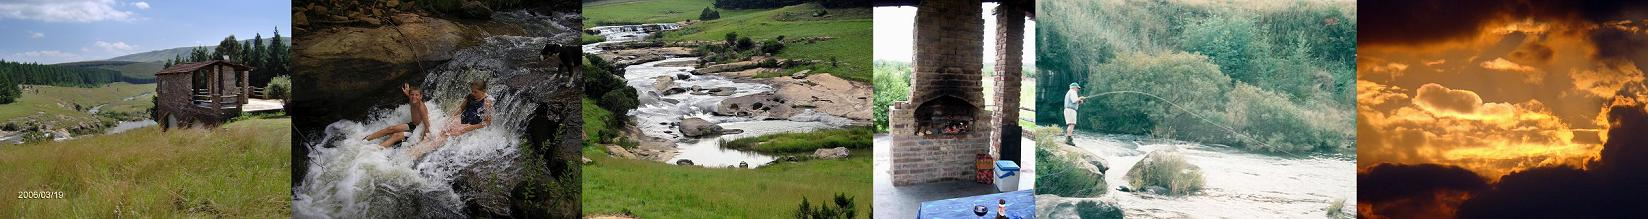 Bivane River Lodge, Utrecht, KwaZulu-Natal Collage